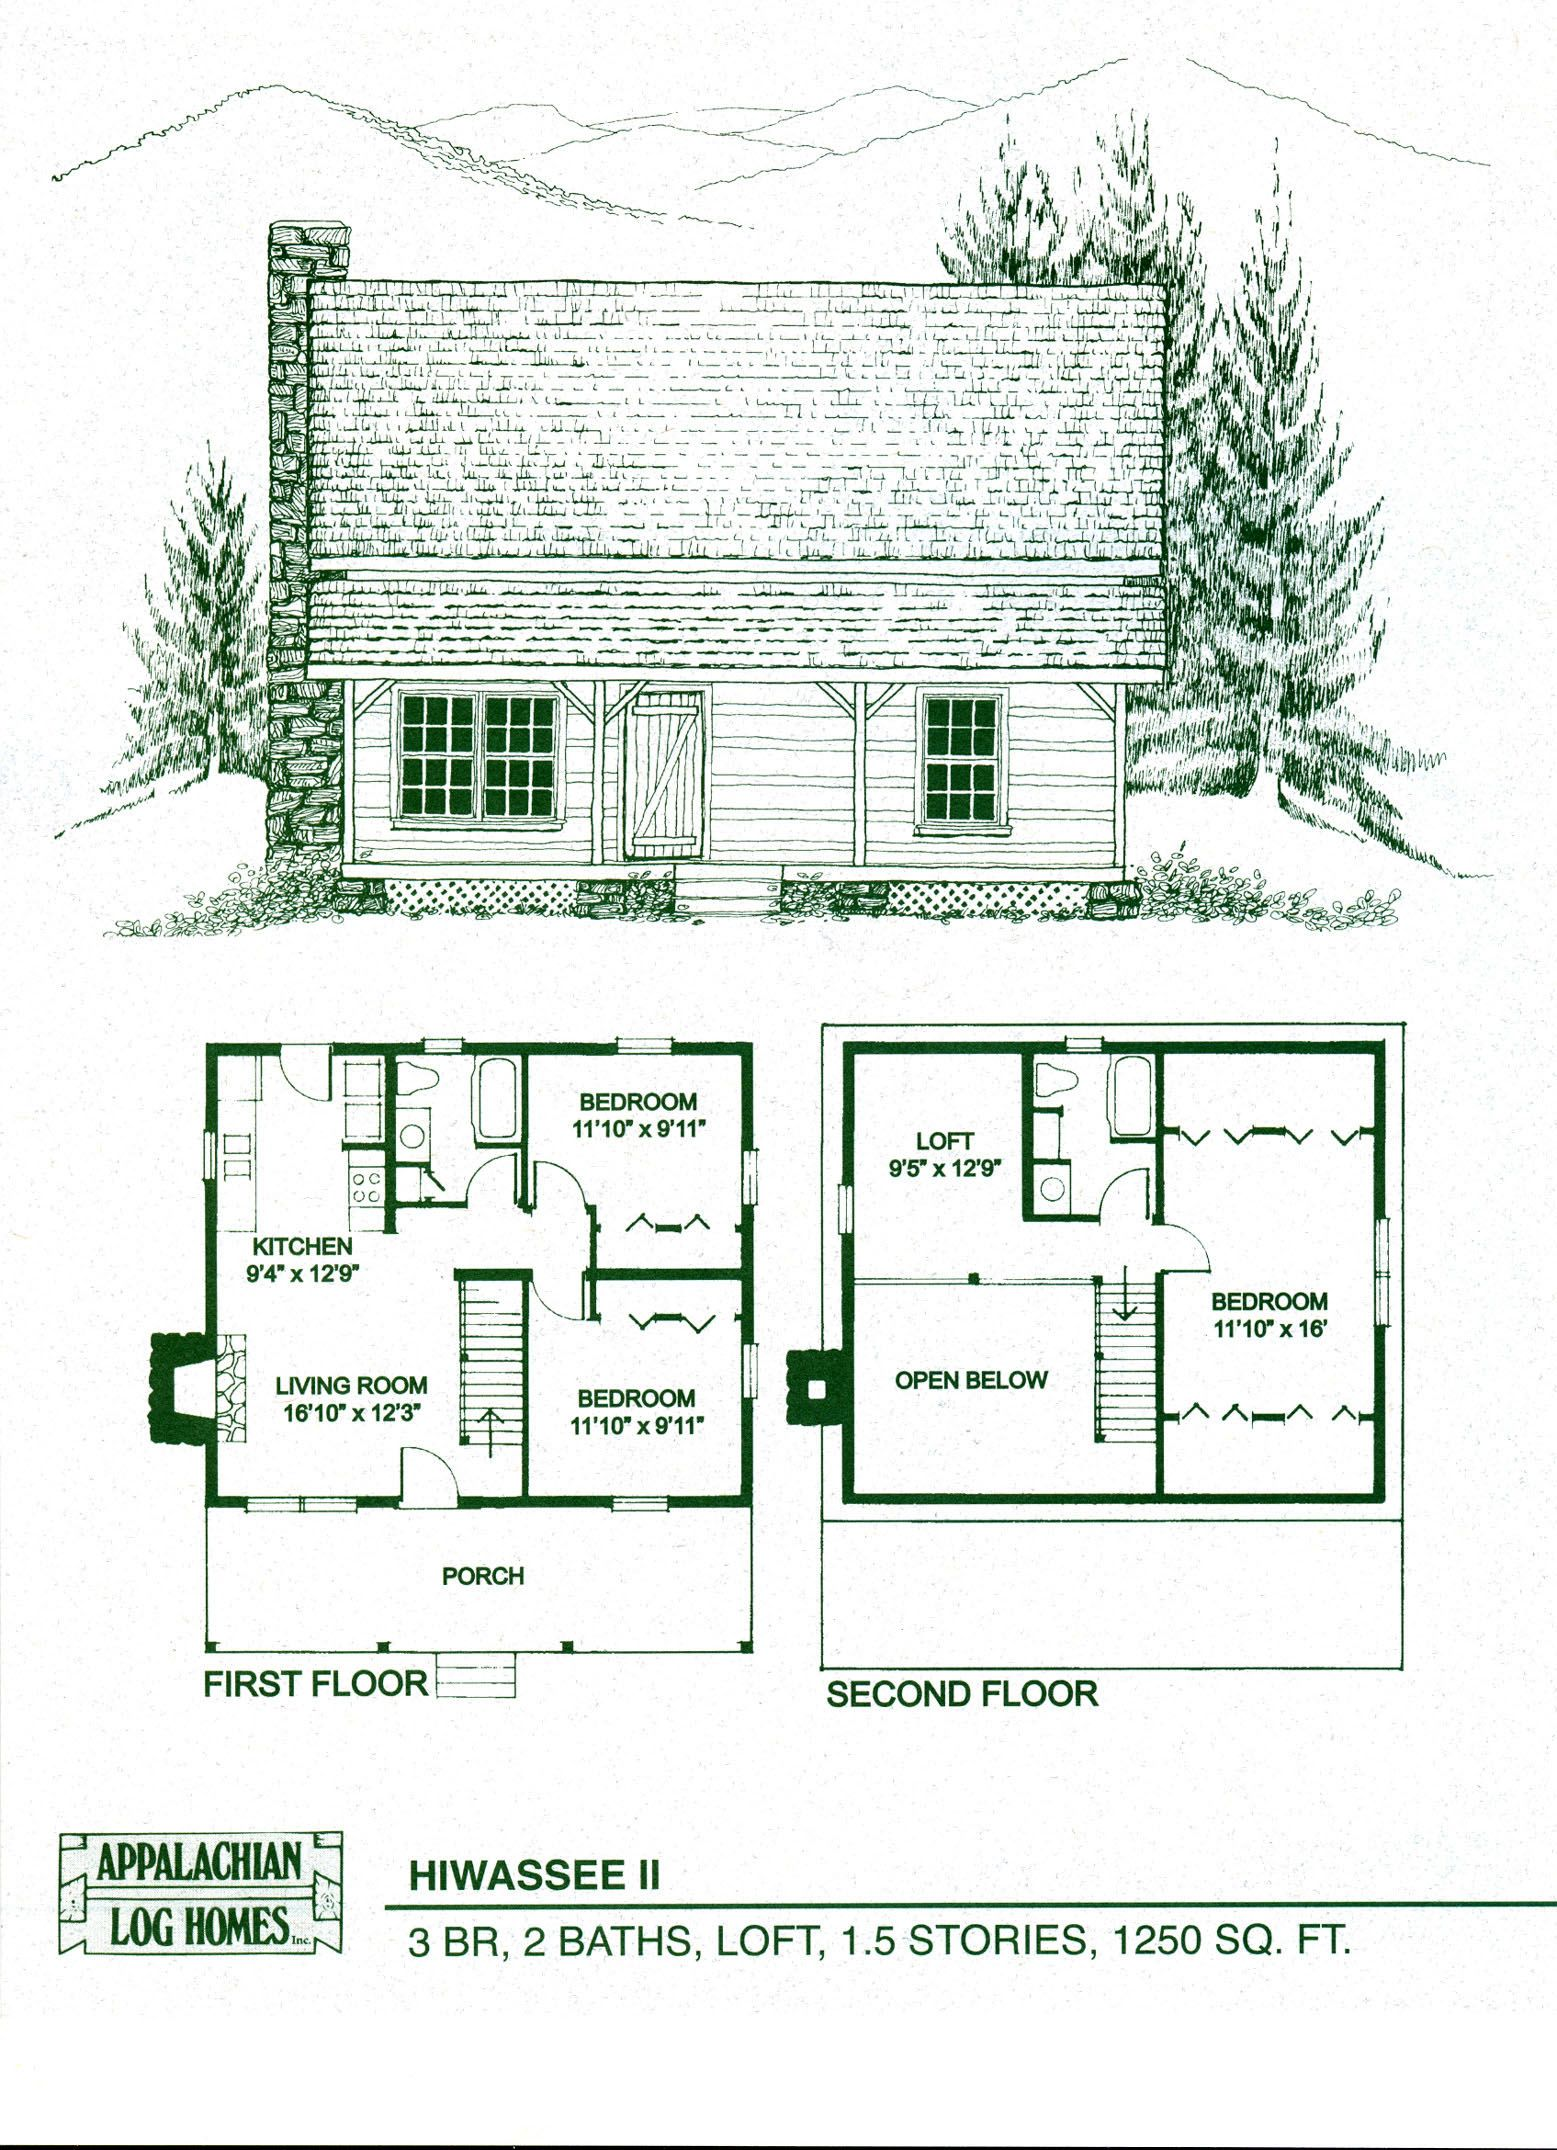 Log home floor plans log cabin kits appalachian log for Mountain cabin floor plans